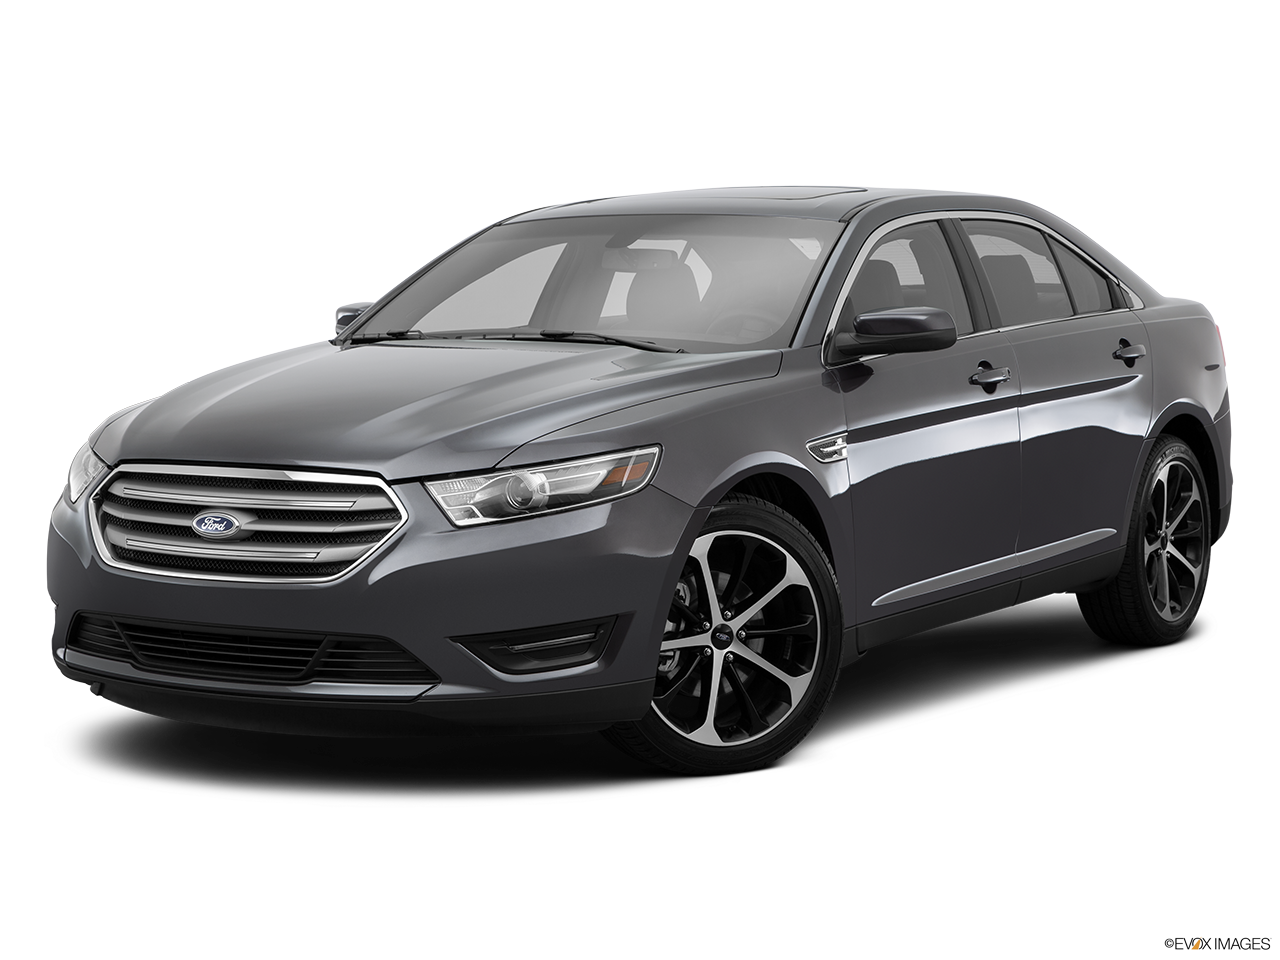 Test Drive A 2015 Ford Taurus at Doenges Ford in Tulsa  sc 1 st  Doenges Ford | New Ford dealership in Bartlesville OK 74006 & Doenges Ford | New Ford dealership in Bartlesville OK 74006 markmcfarlin.com